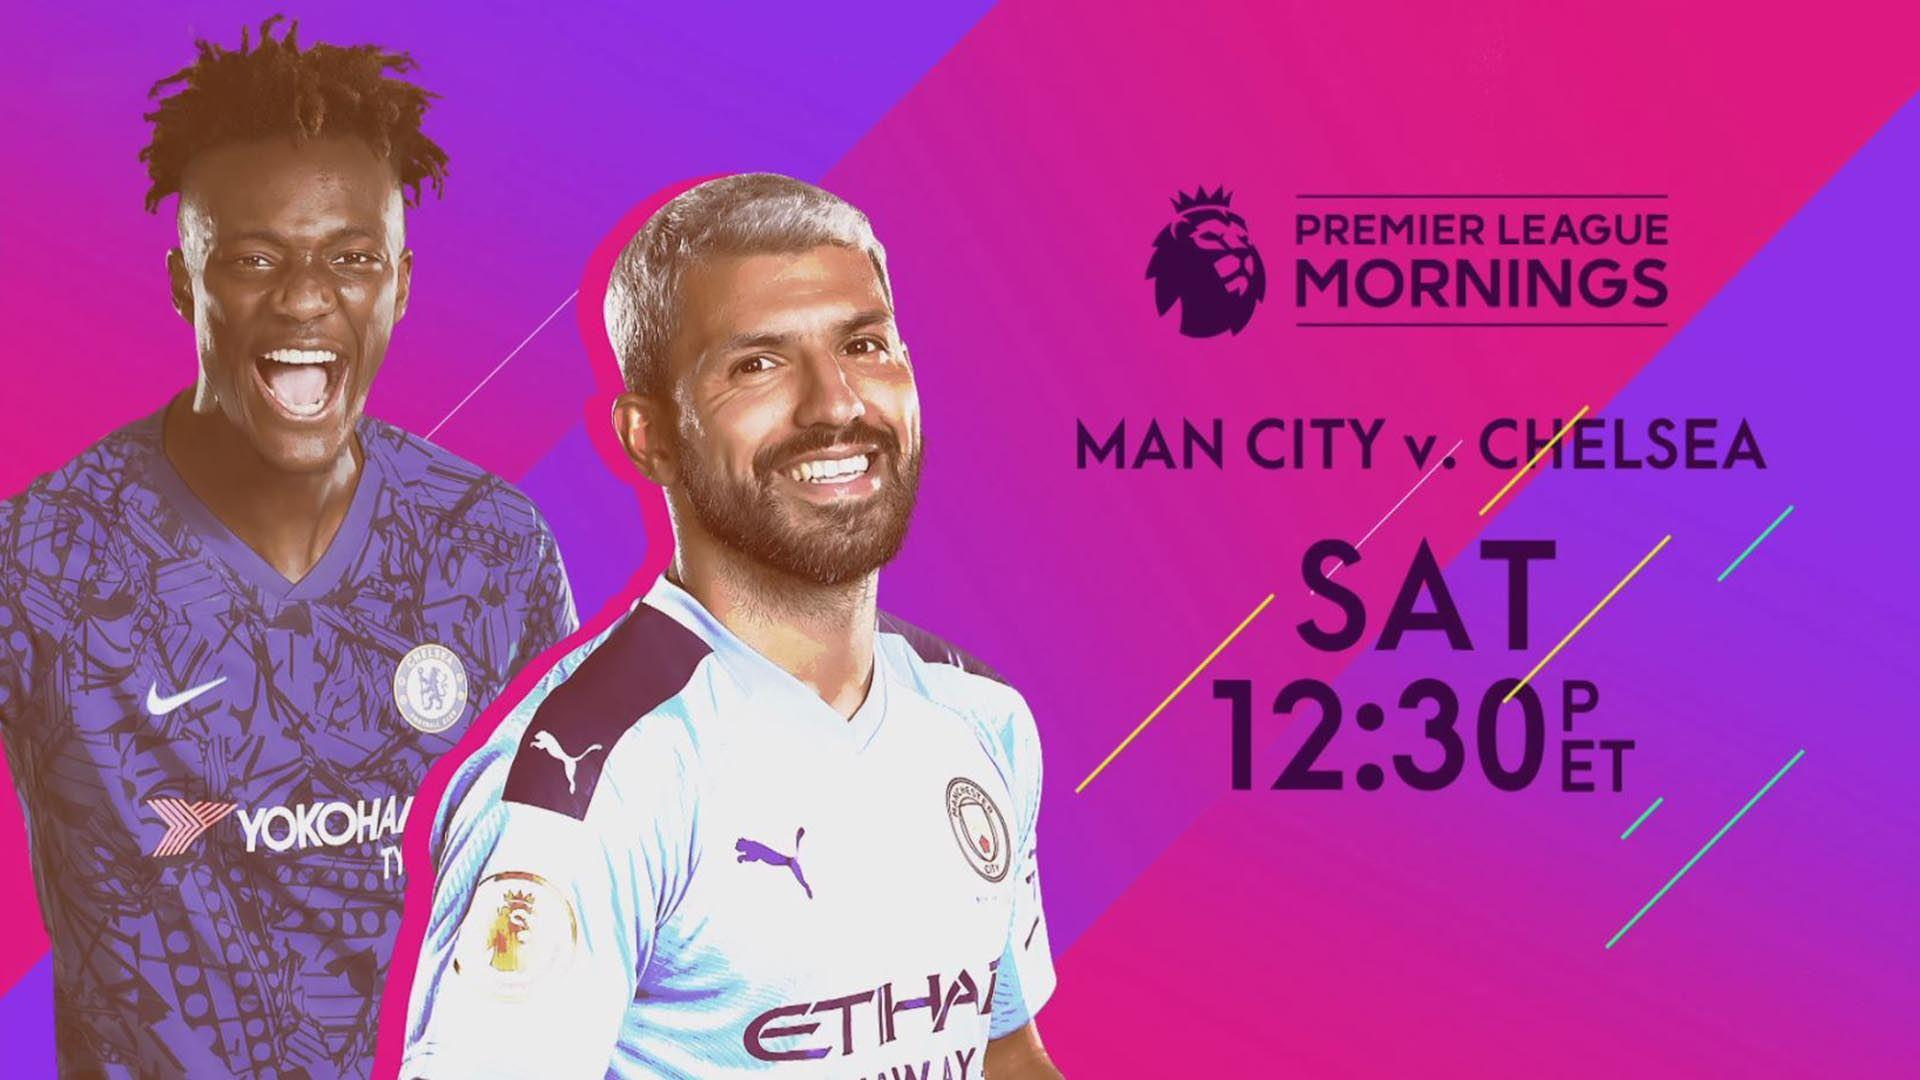 All Rise for Manchester City v. Chelsea - Yahoo Sports